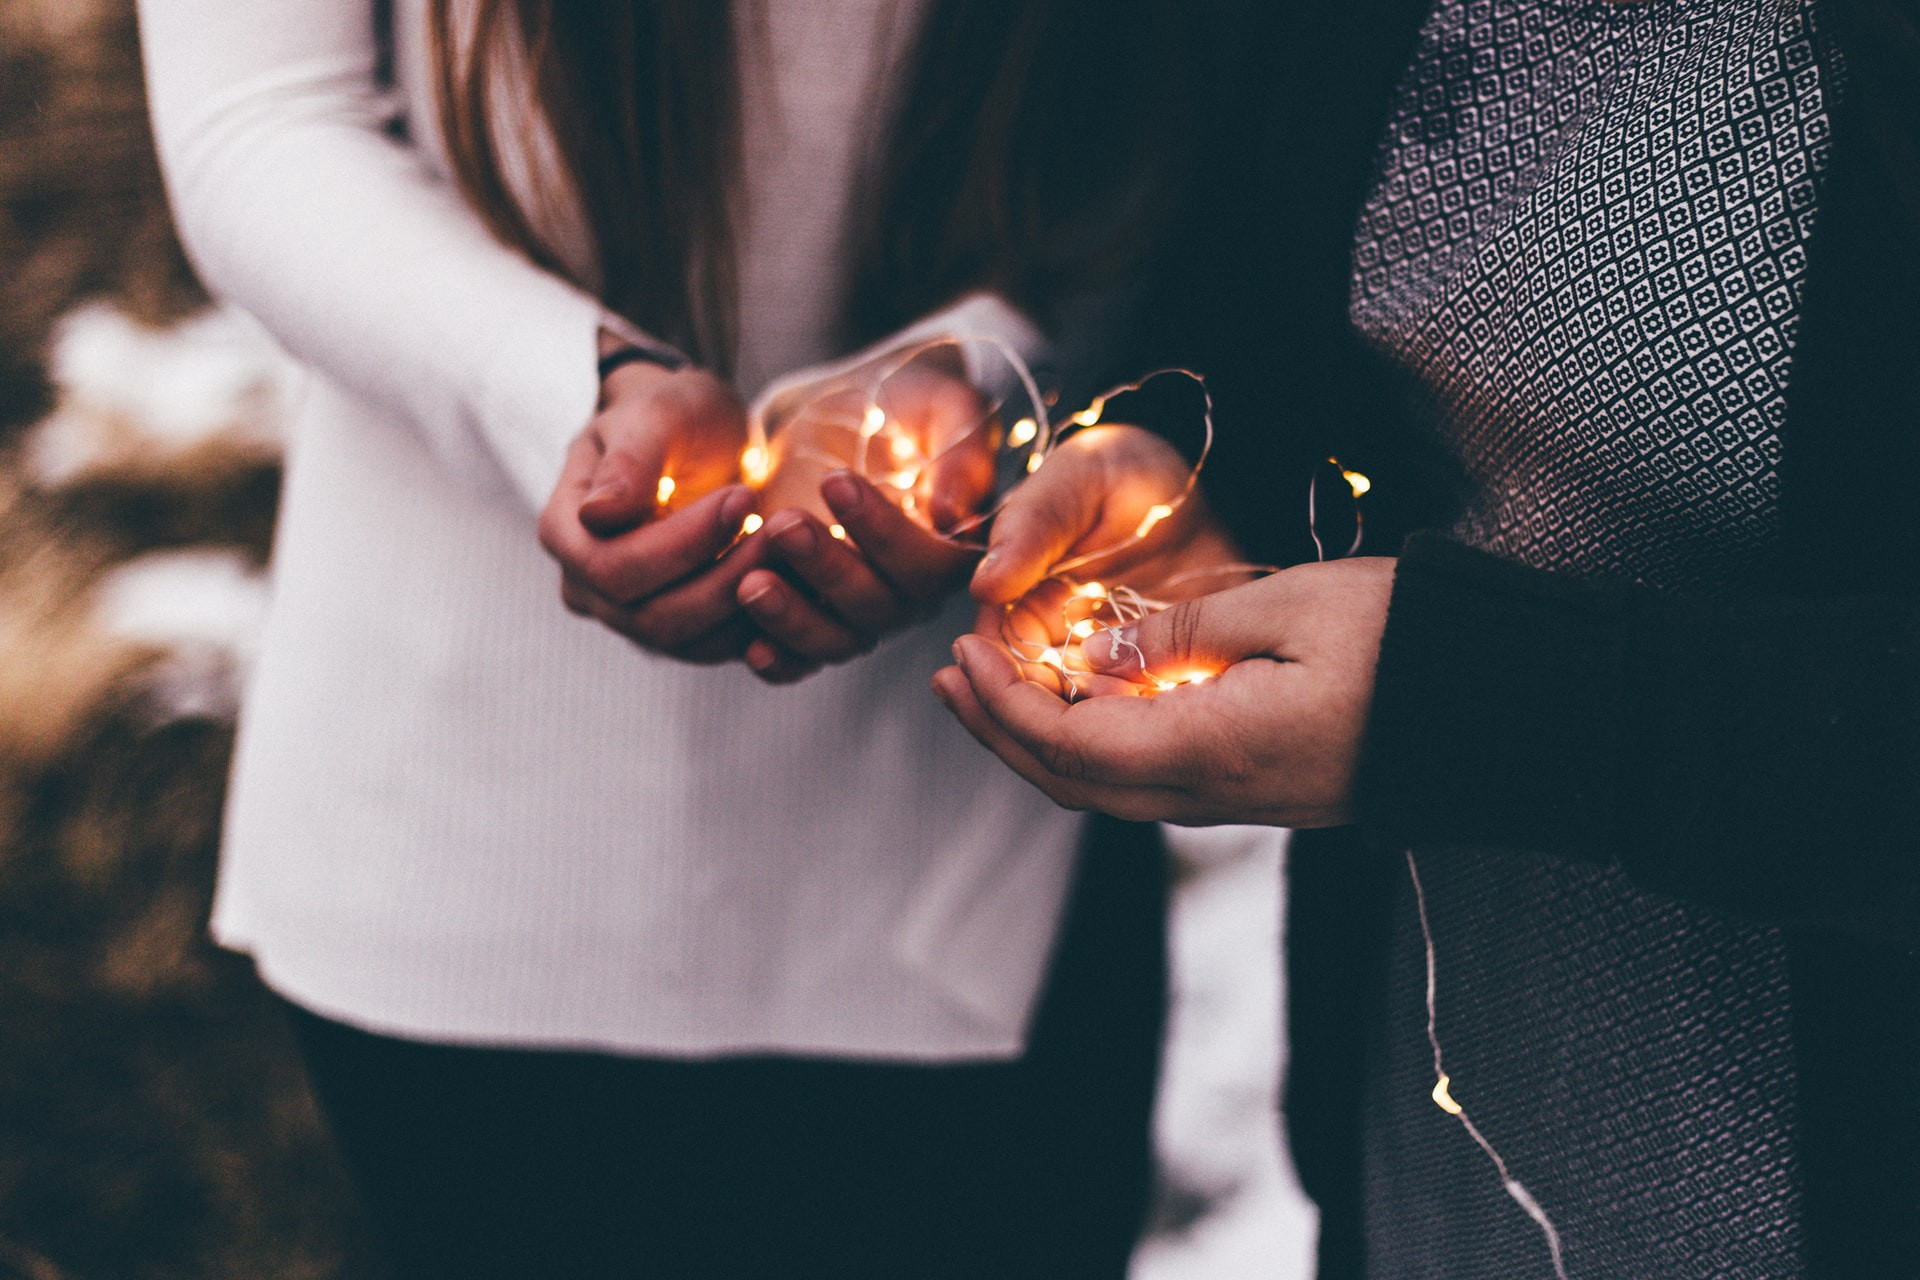 Close-up photo of two person holding lighted string lights.